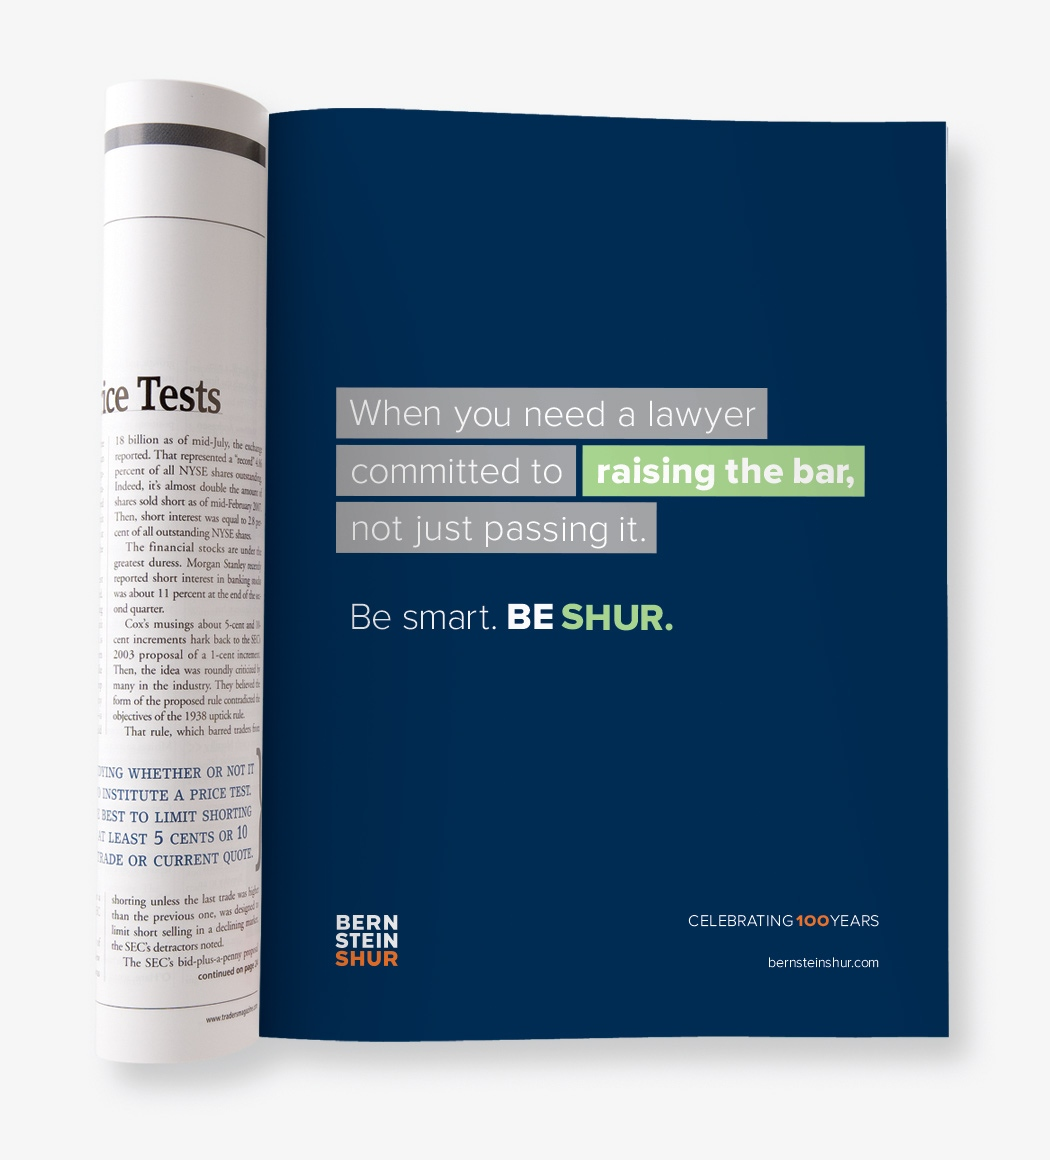 """A Bernstein Shur magazine ad that reads """"When you need a lawyer committed to raising the bar, not just passing it."""""""